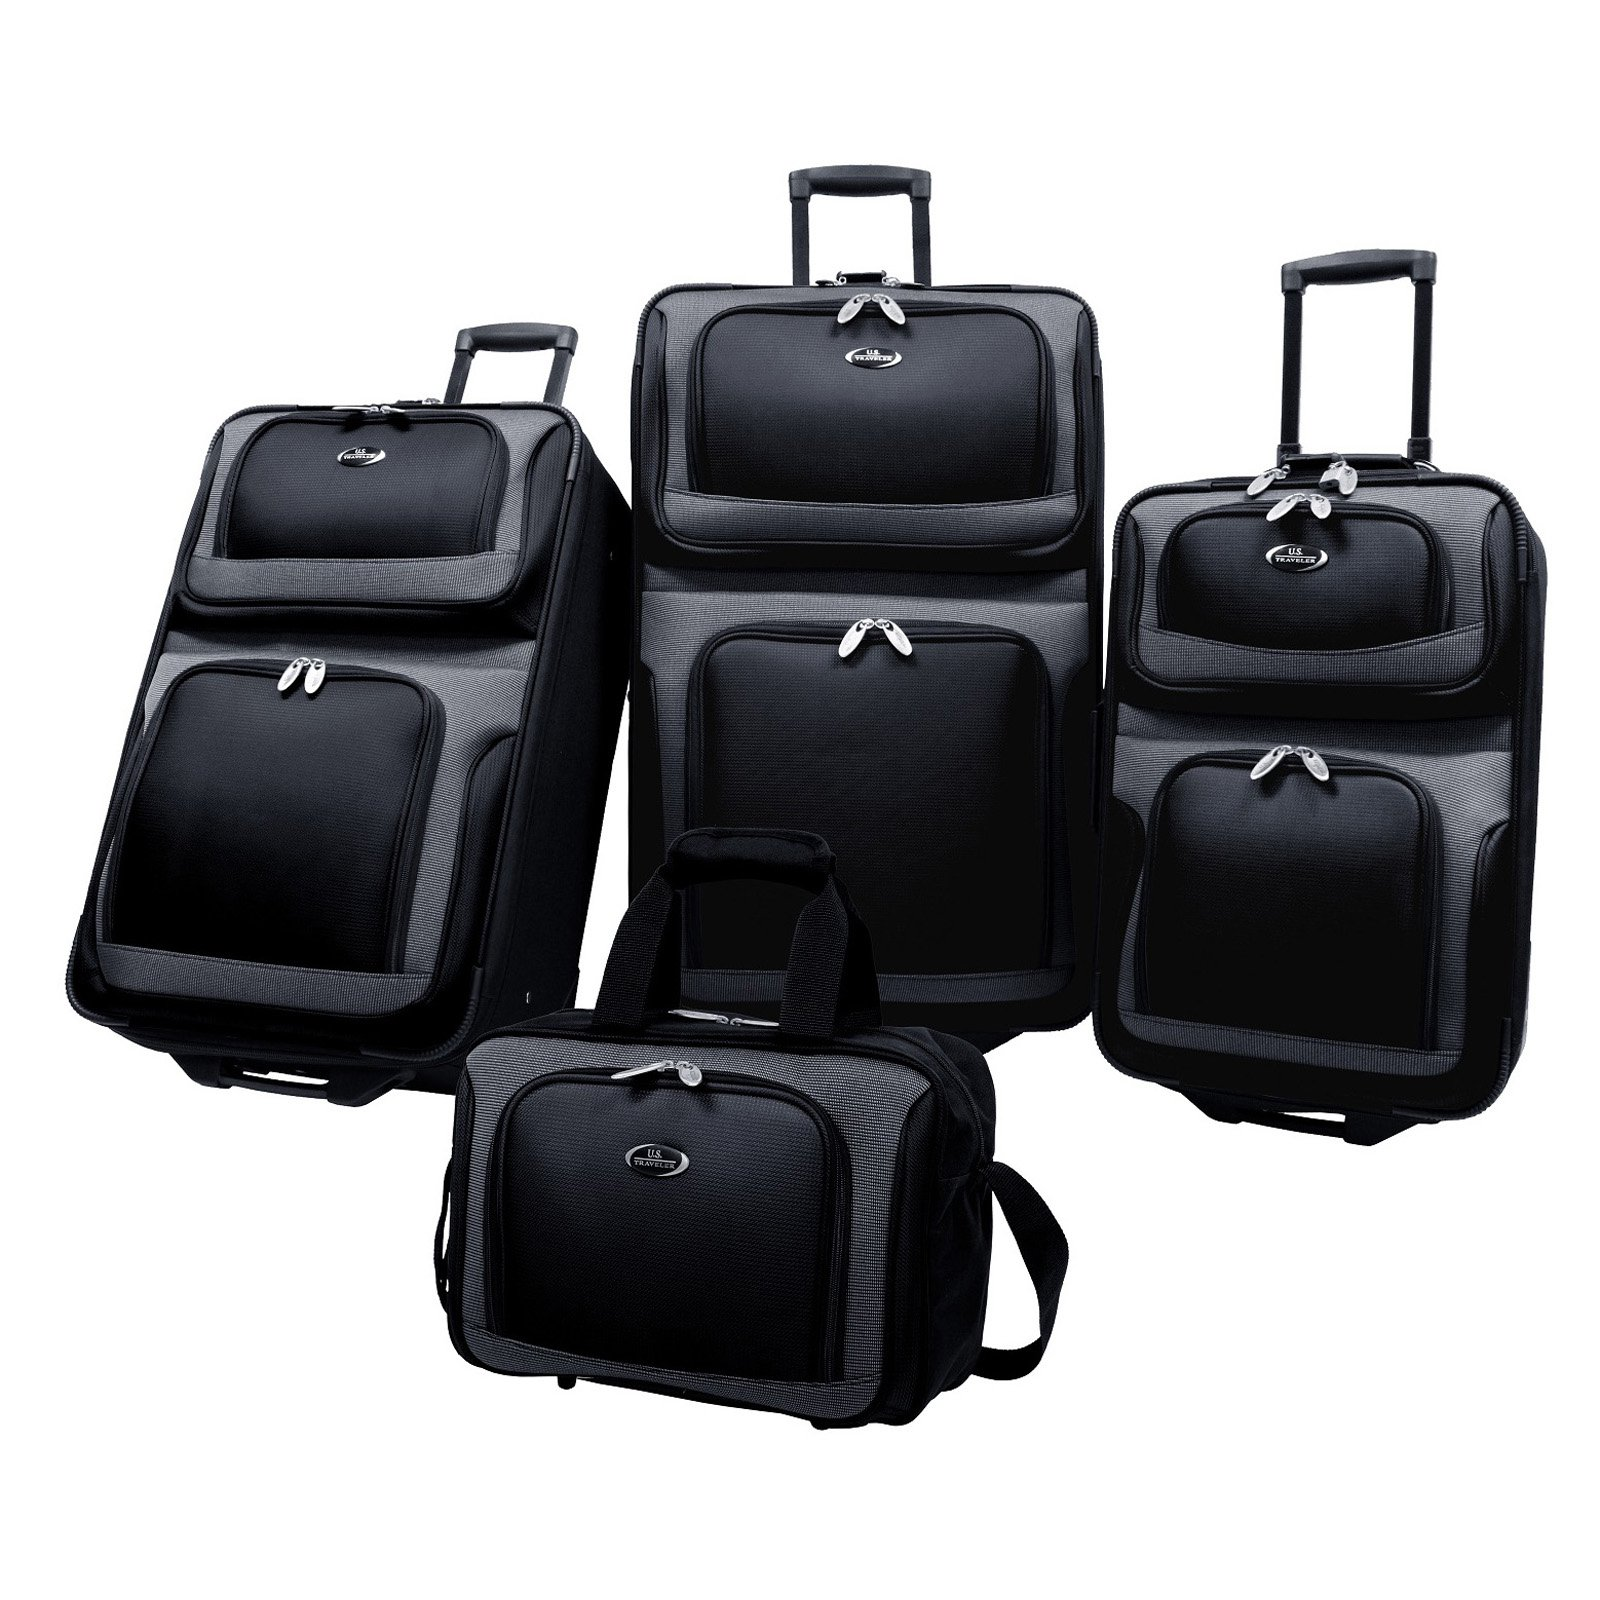 US Traveler New Yorker 4 Piece Expandable Luggage Set - Walmart.com